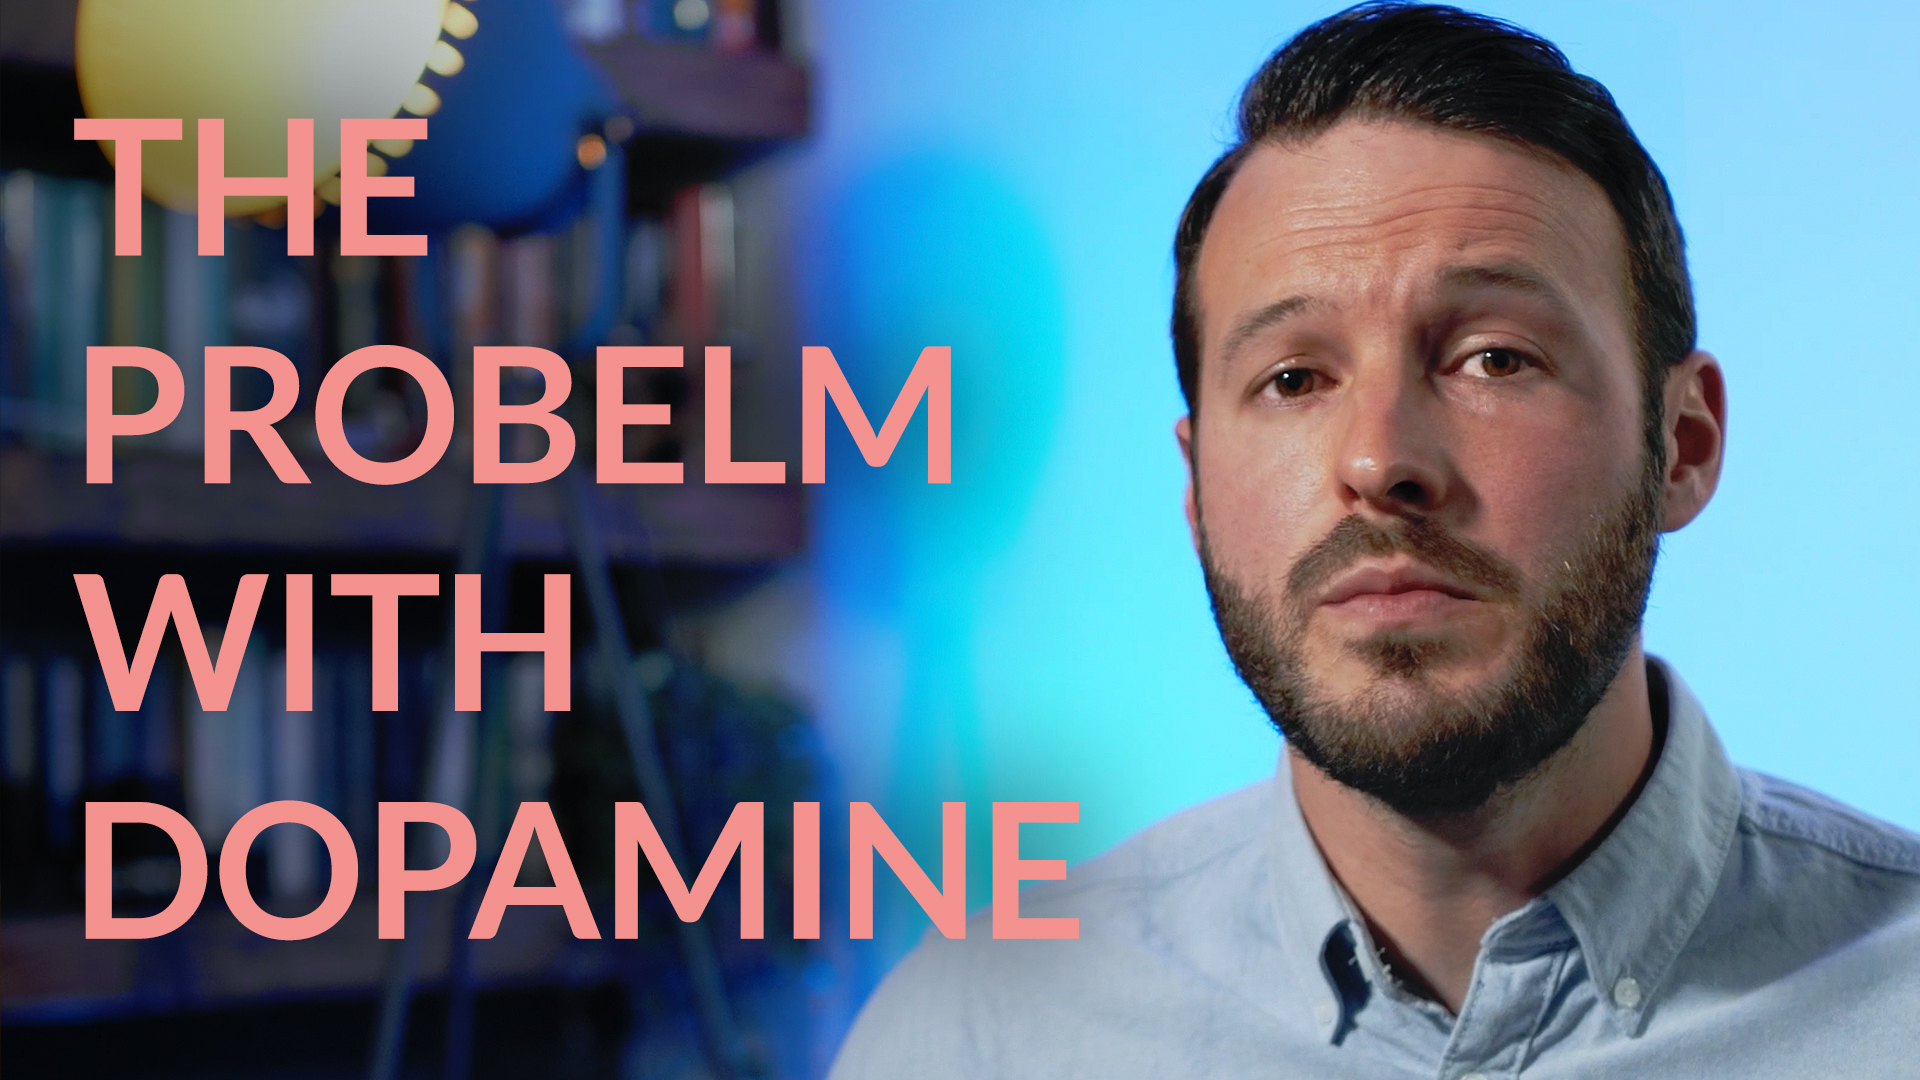 Day 5 - The problem with dopamine